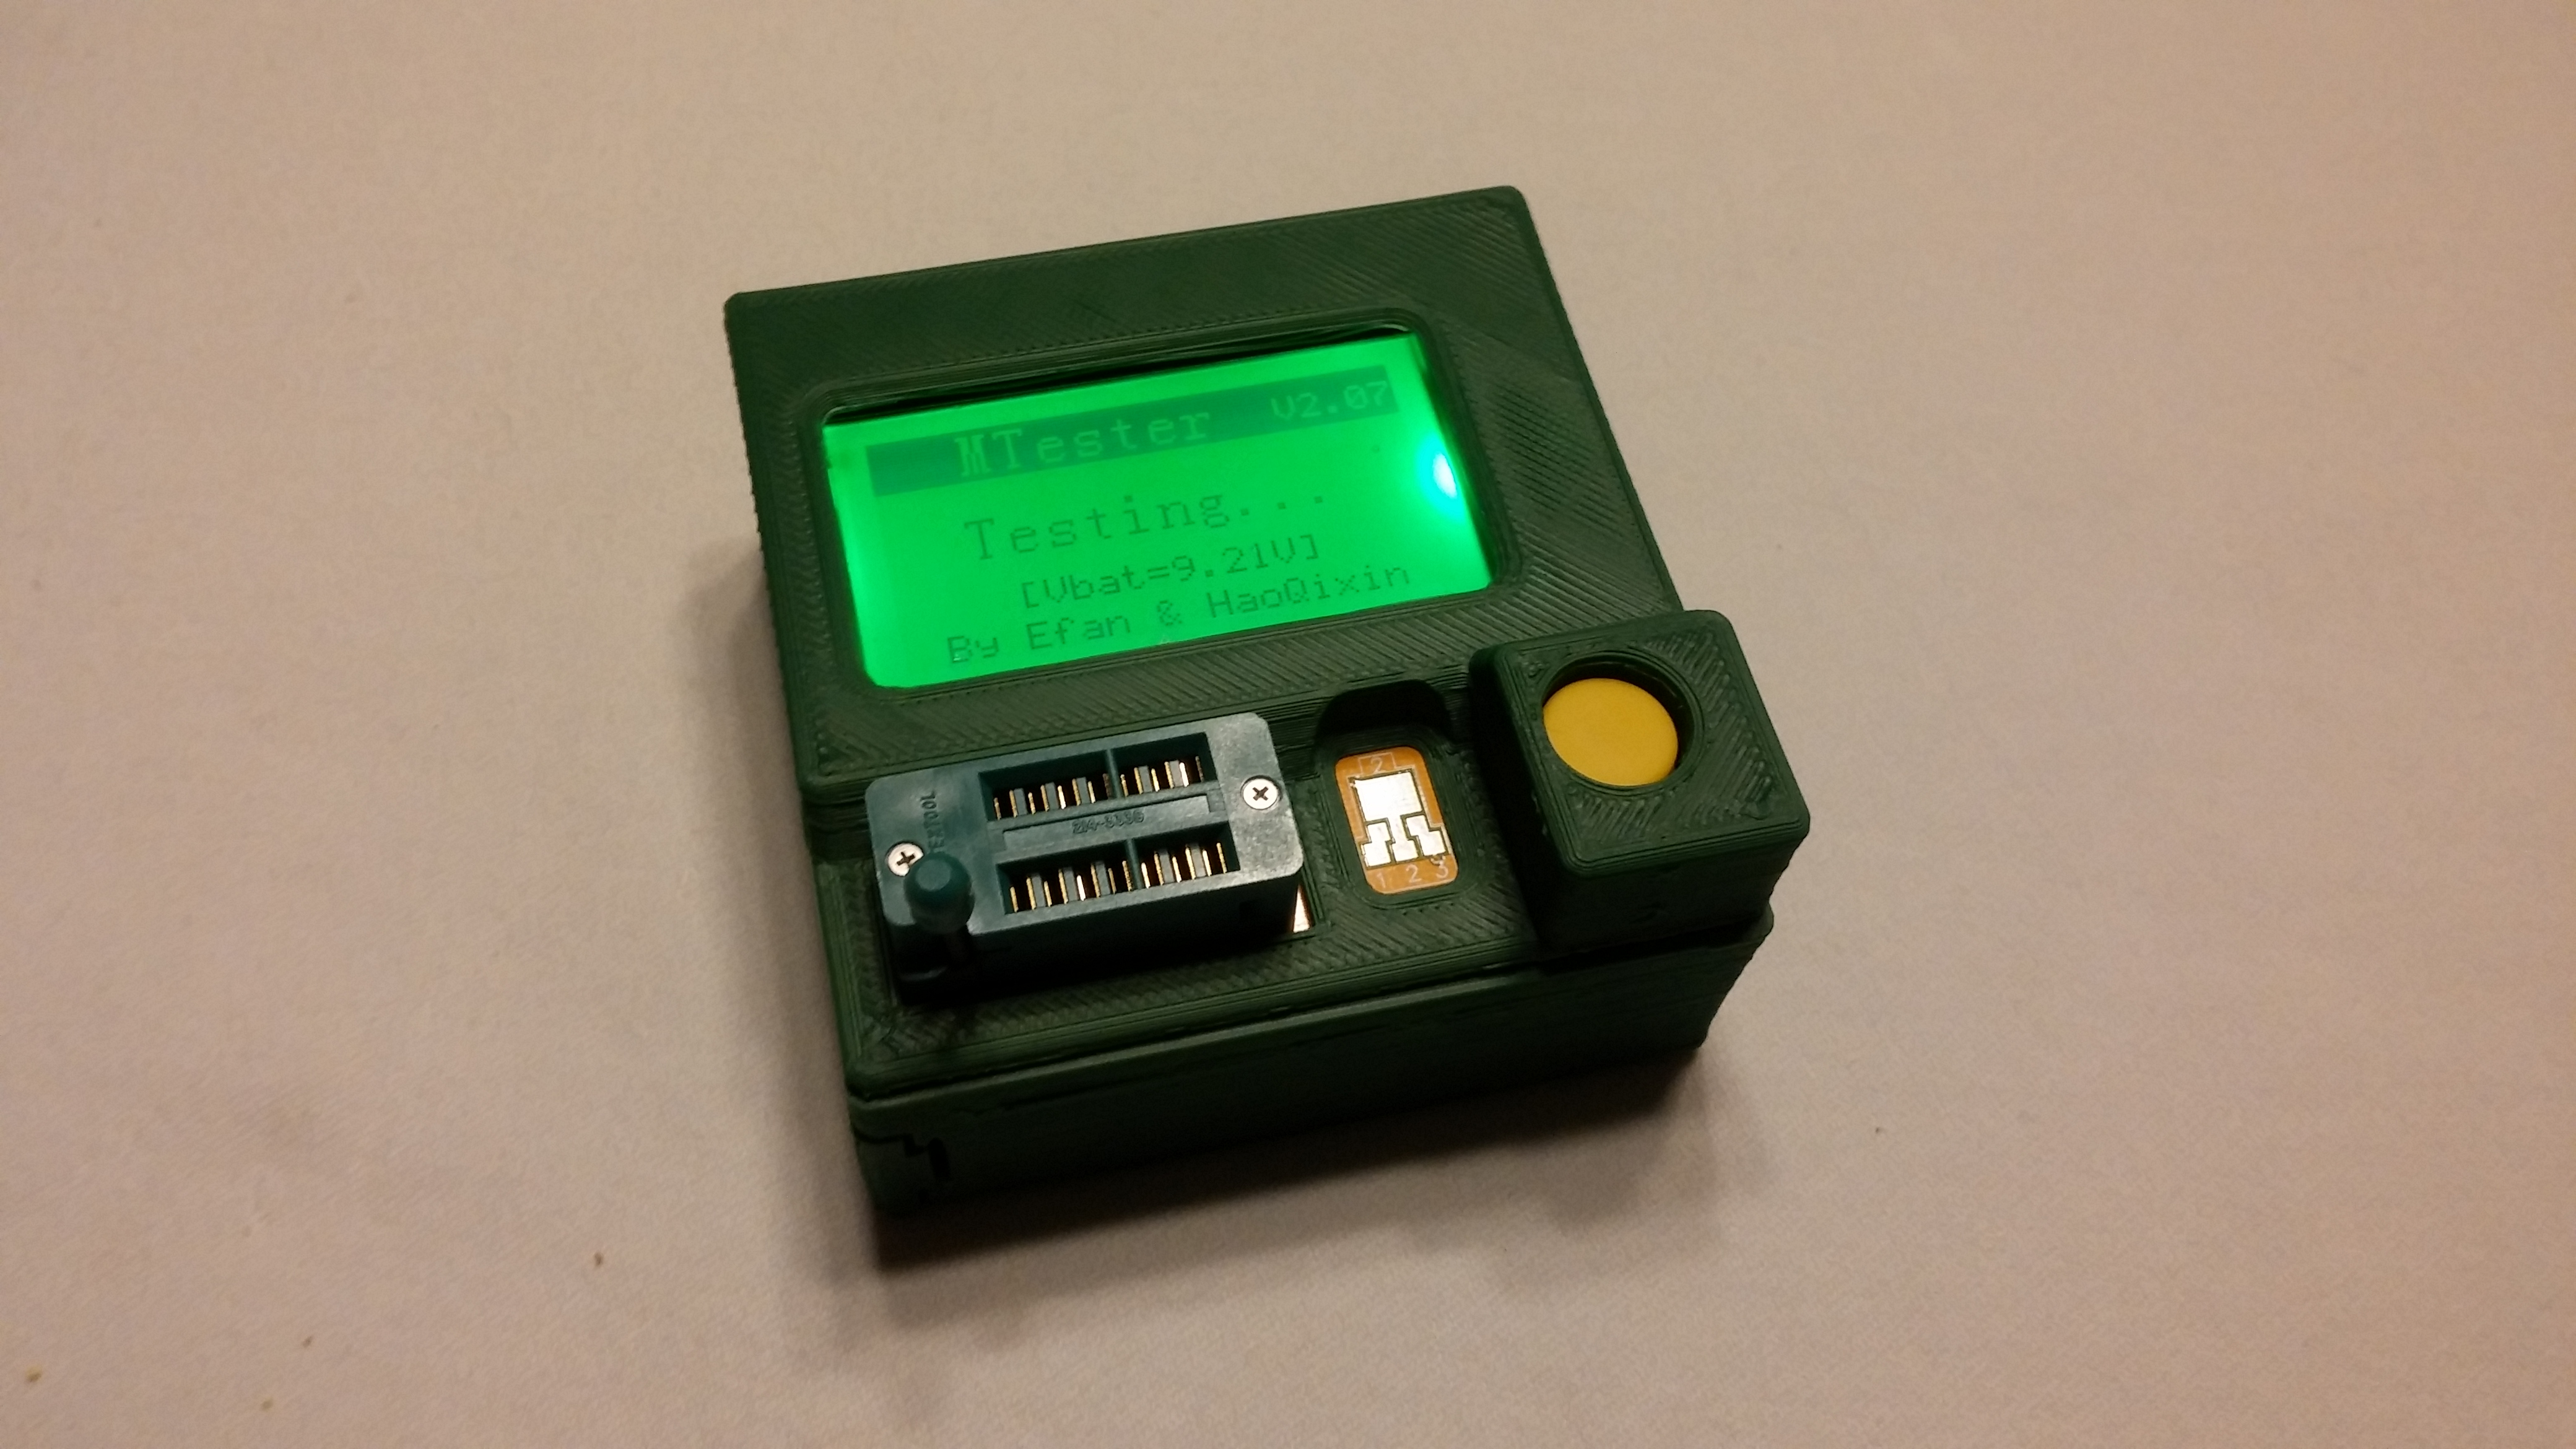 Case For Lcr Transistor Tester Qs2015 T3 By Prp Thingiverse Repair Aug 18 2016 View Original